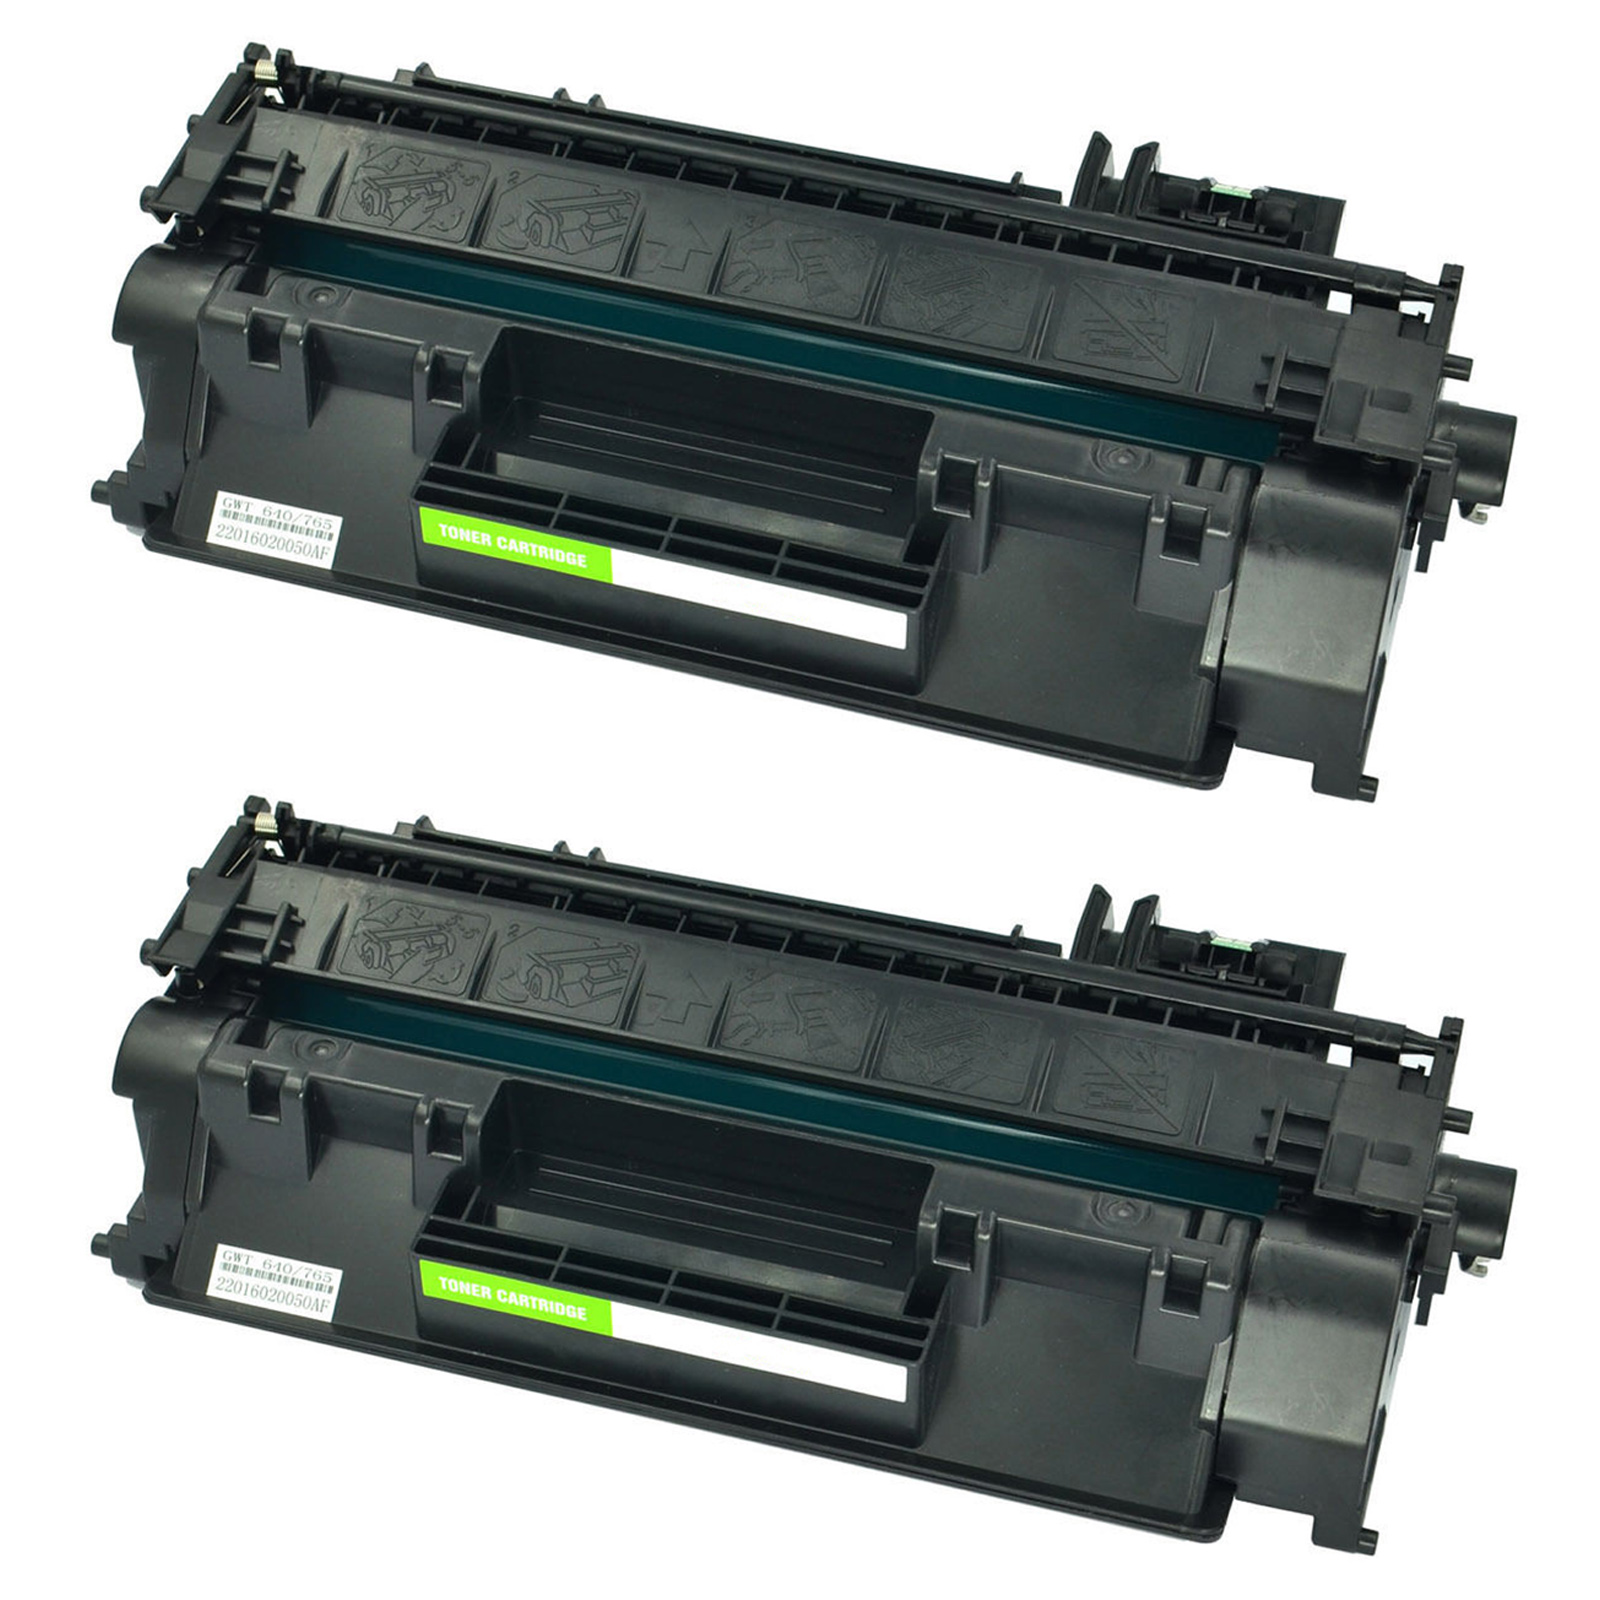 You may also like 2PK Toner Cartridge